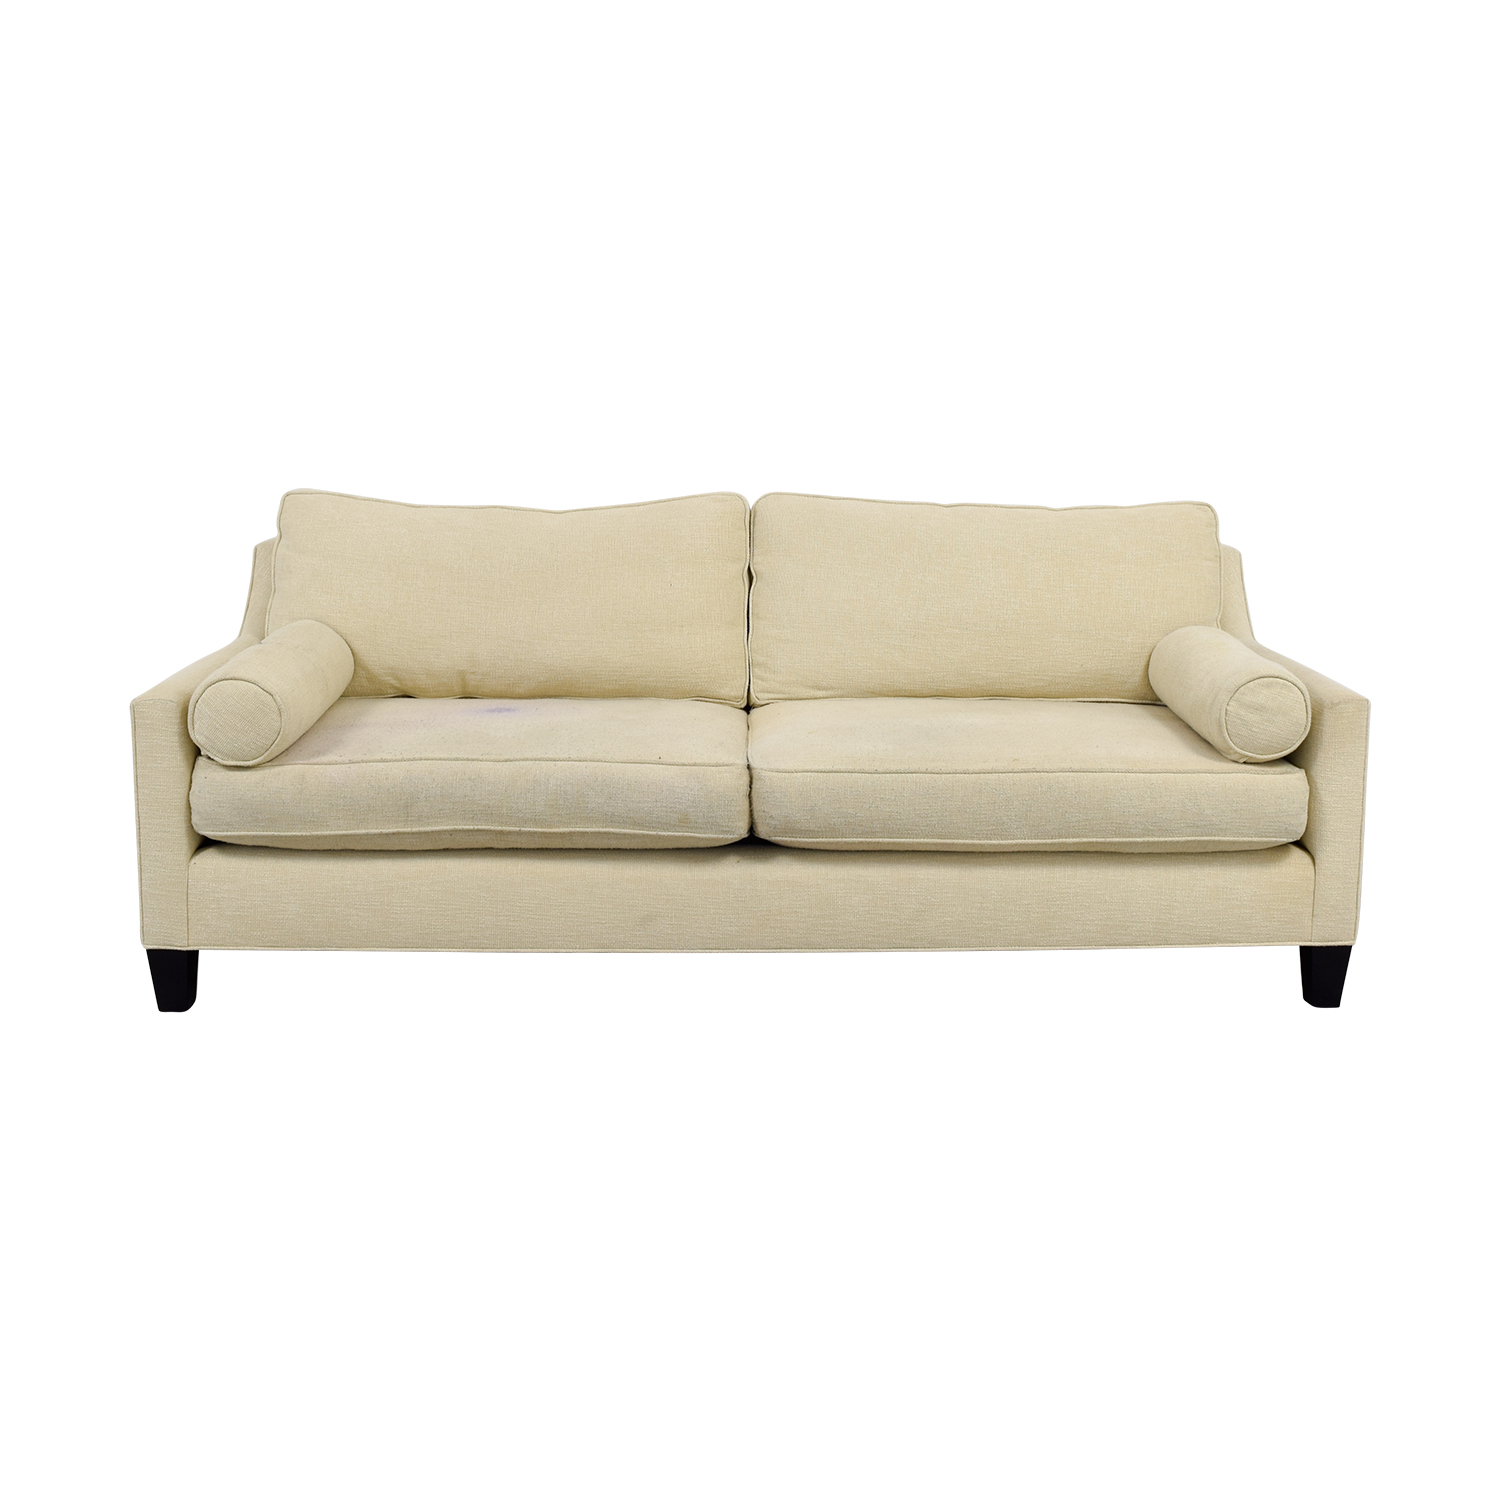 BSC Furniture BSC Furniture Beige Two-Cushion Sofa Off White